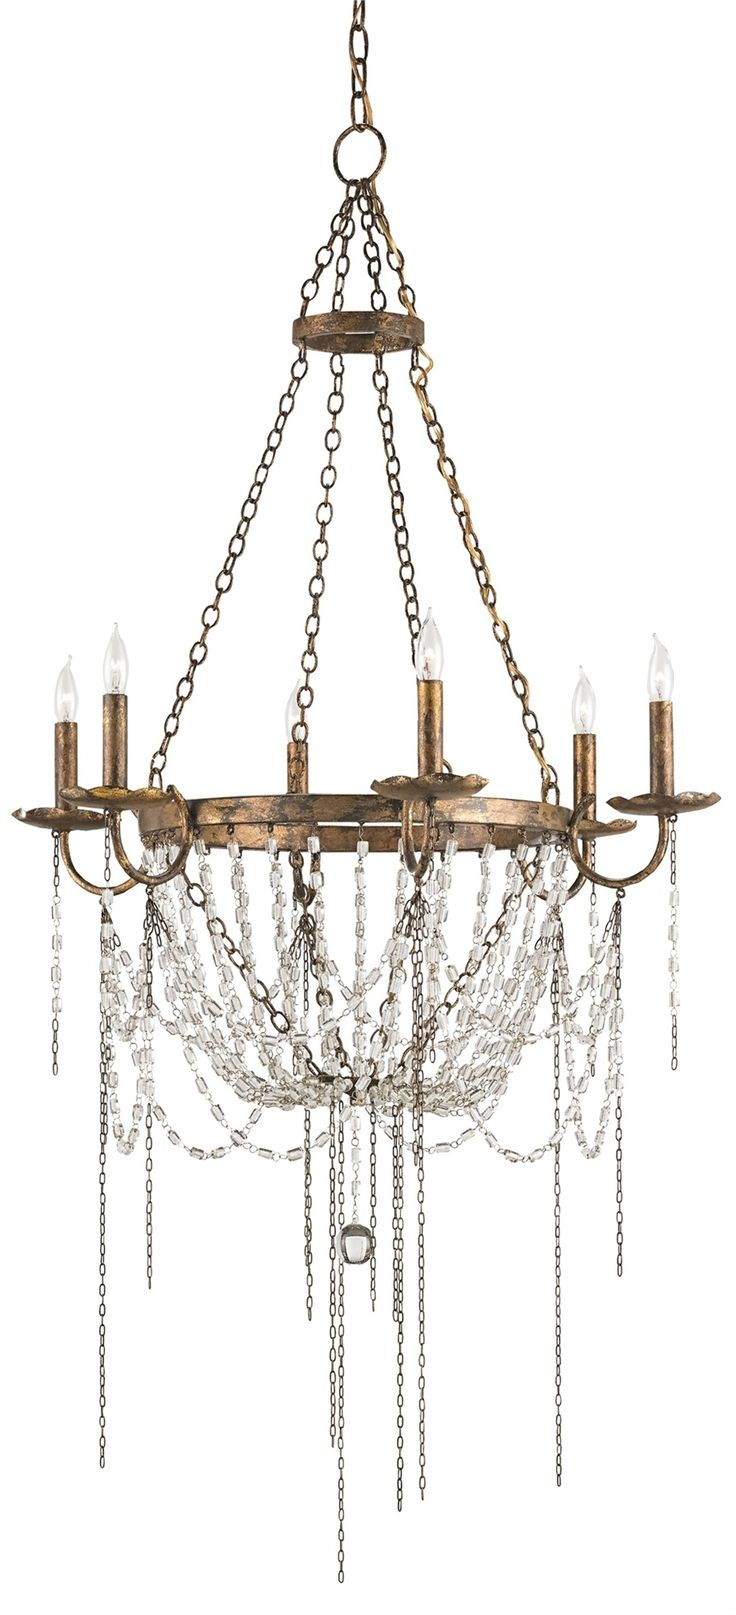 108 best lighting images on pinterest light fixtures 108 best lighting images on pinterest light fixtures chandeliers modern and cottage lighting arubaitofo Choice Image